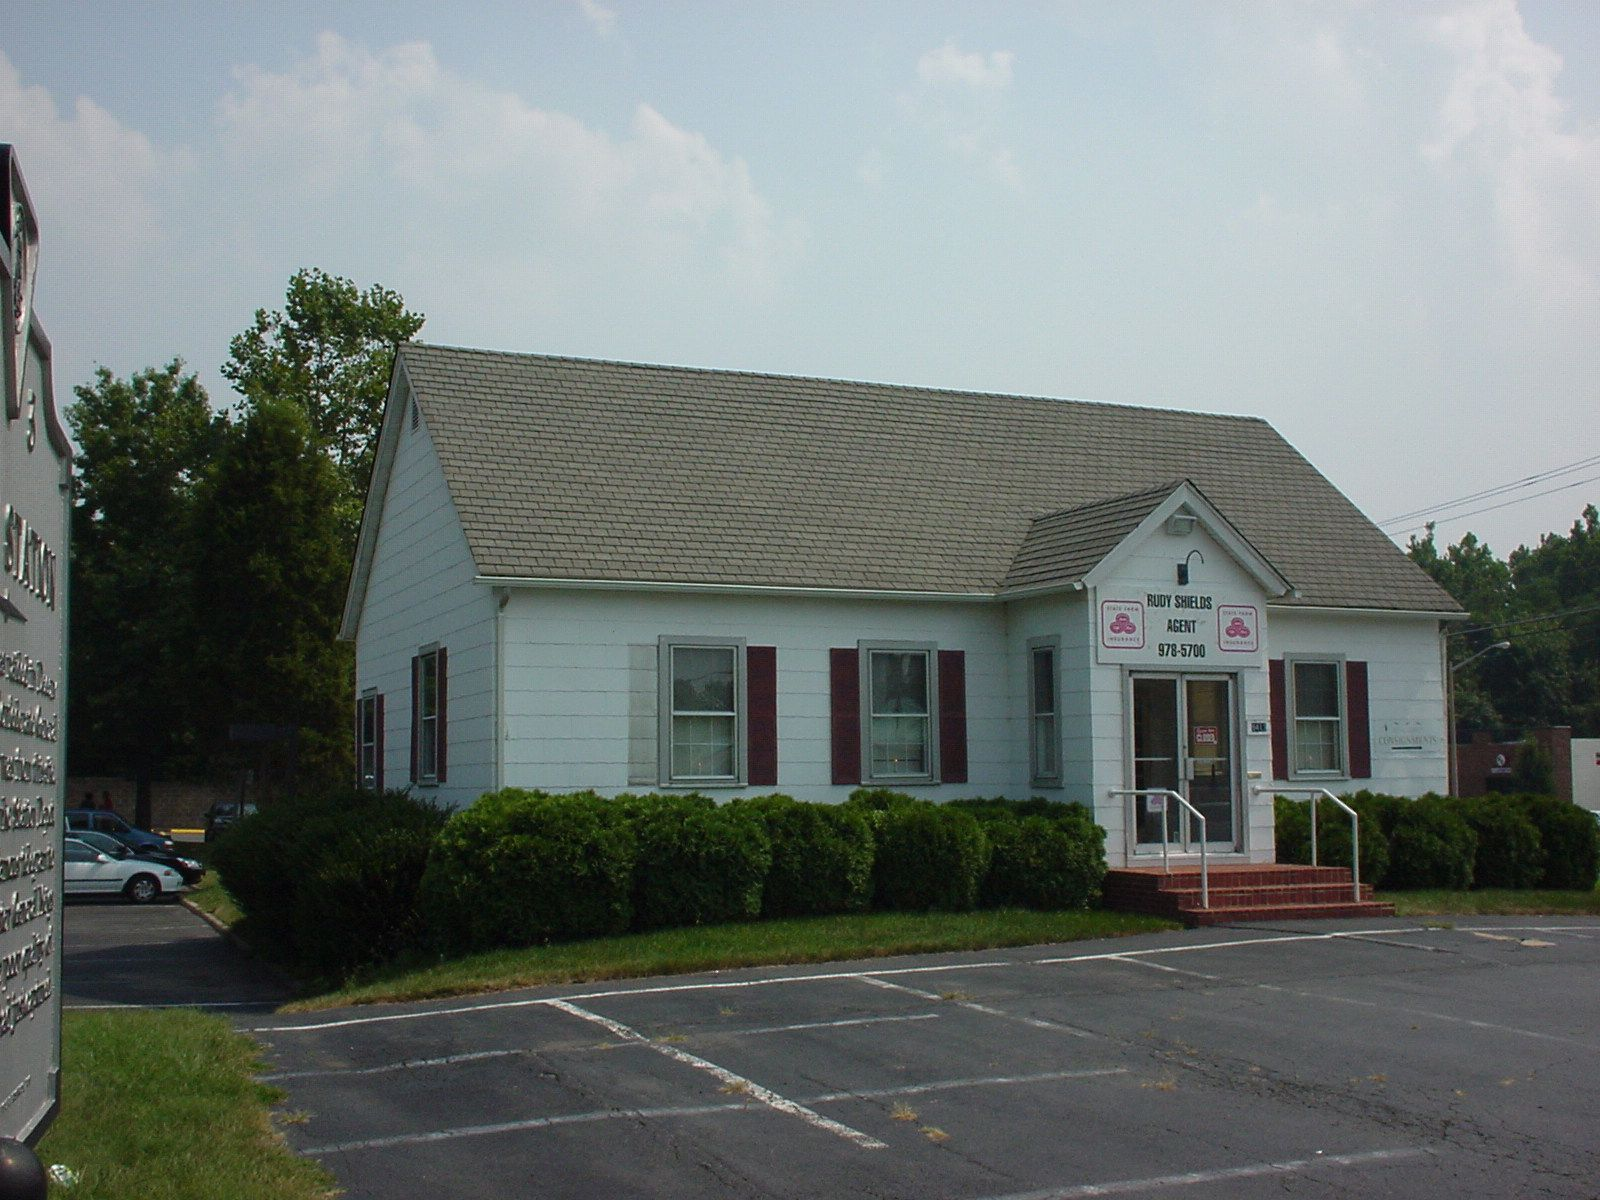 The Burke's Station building in 2005